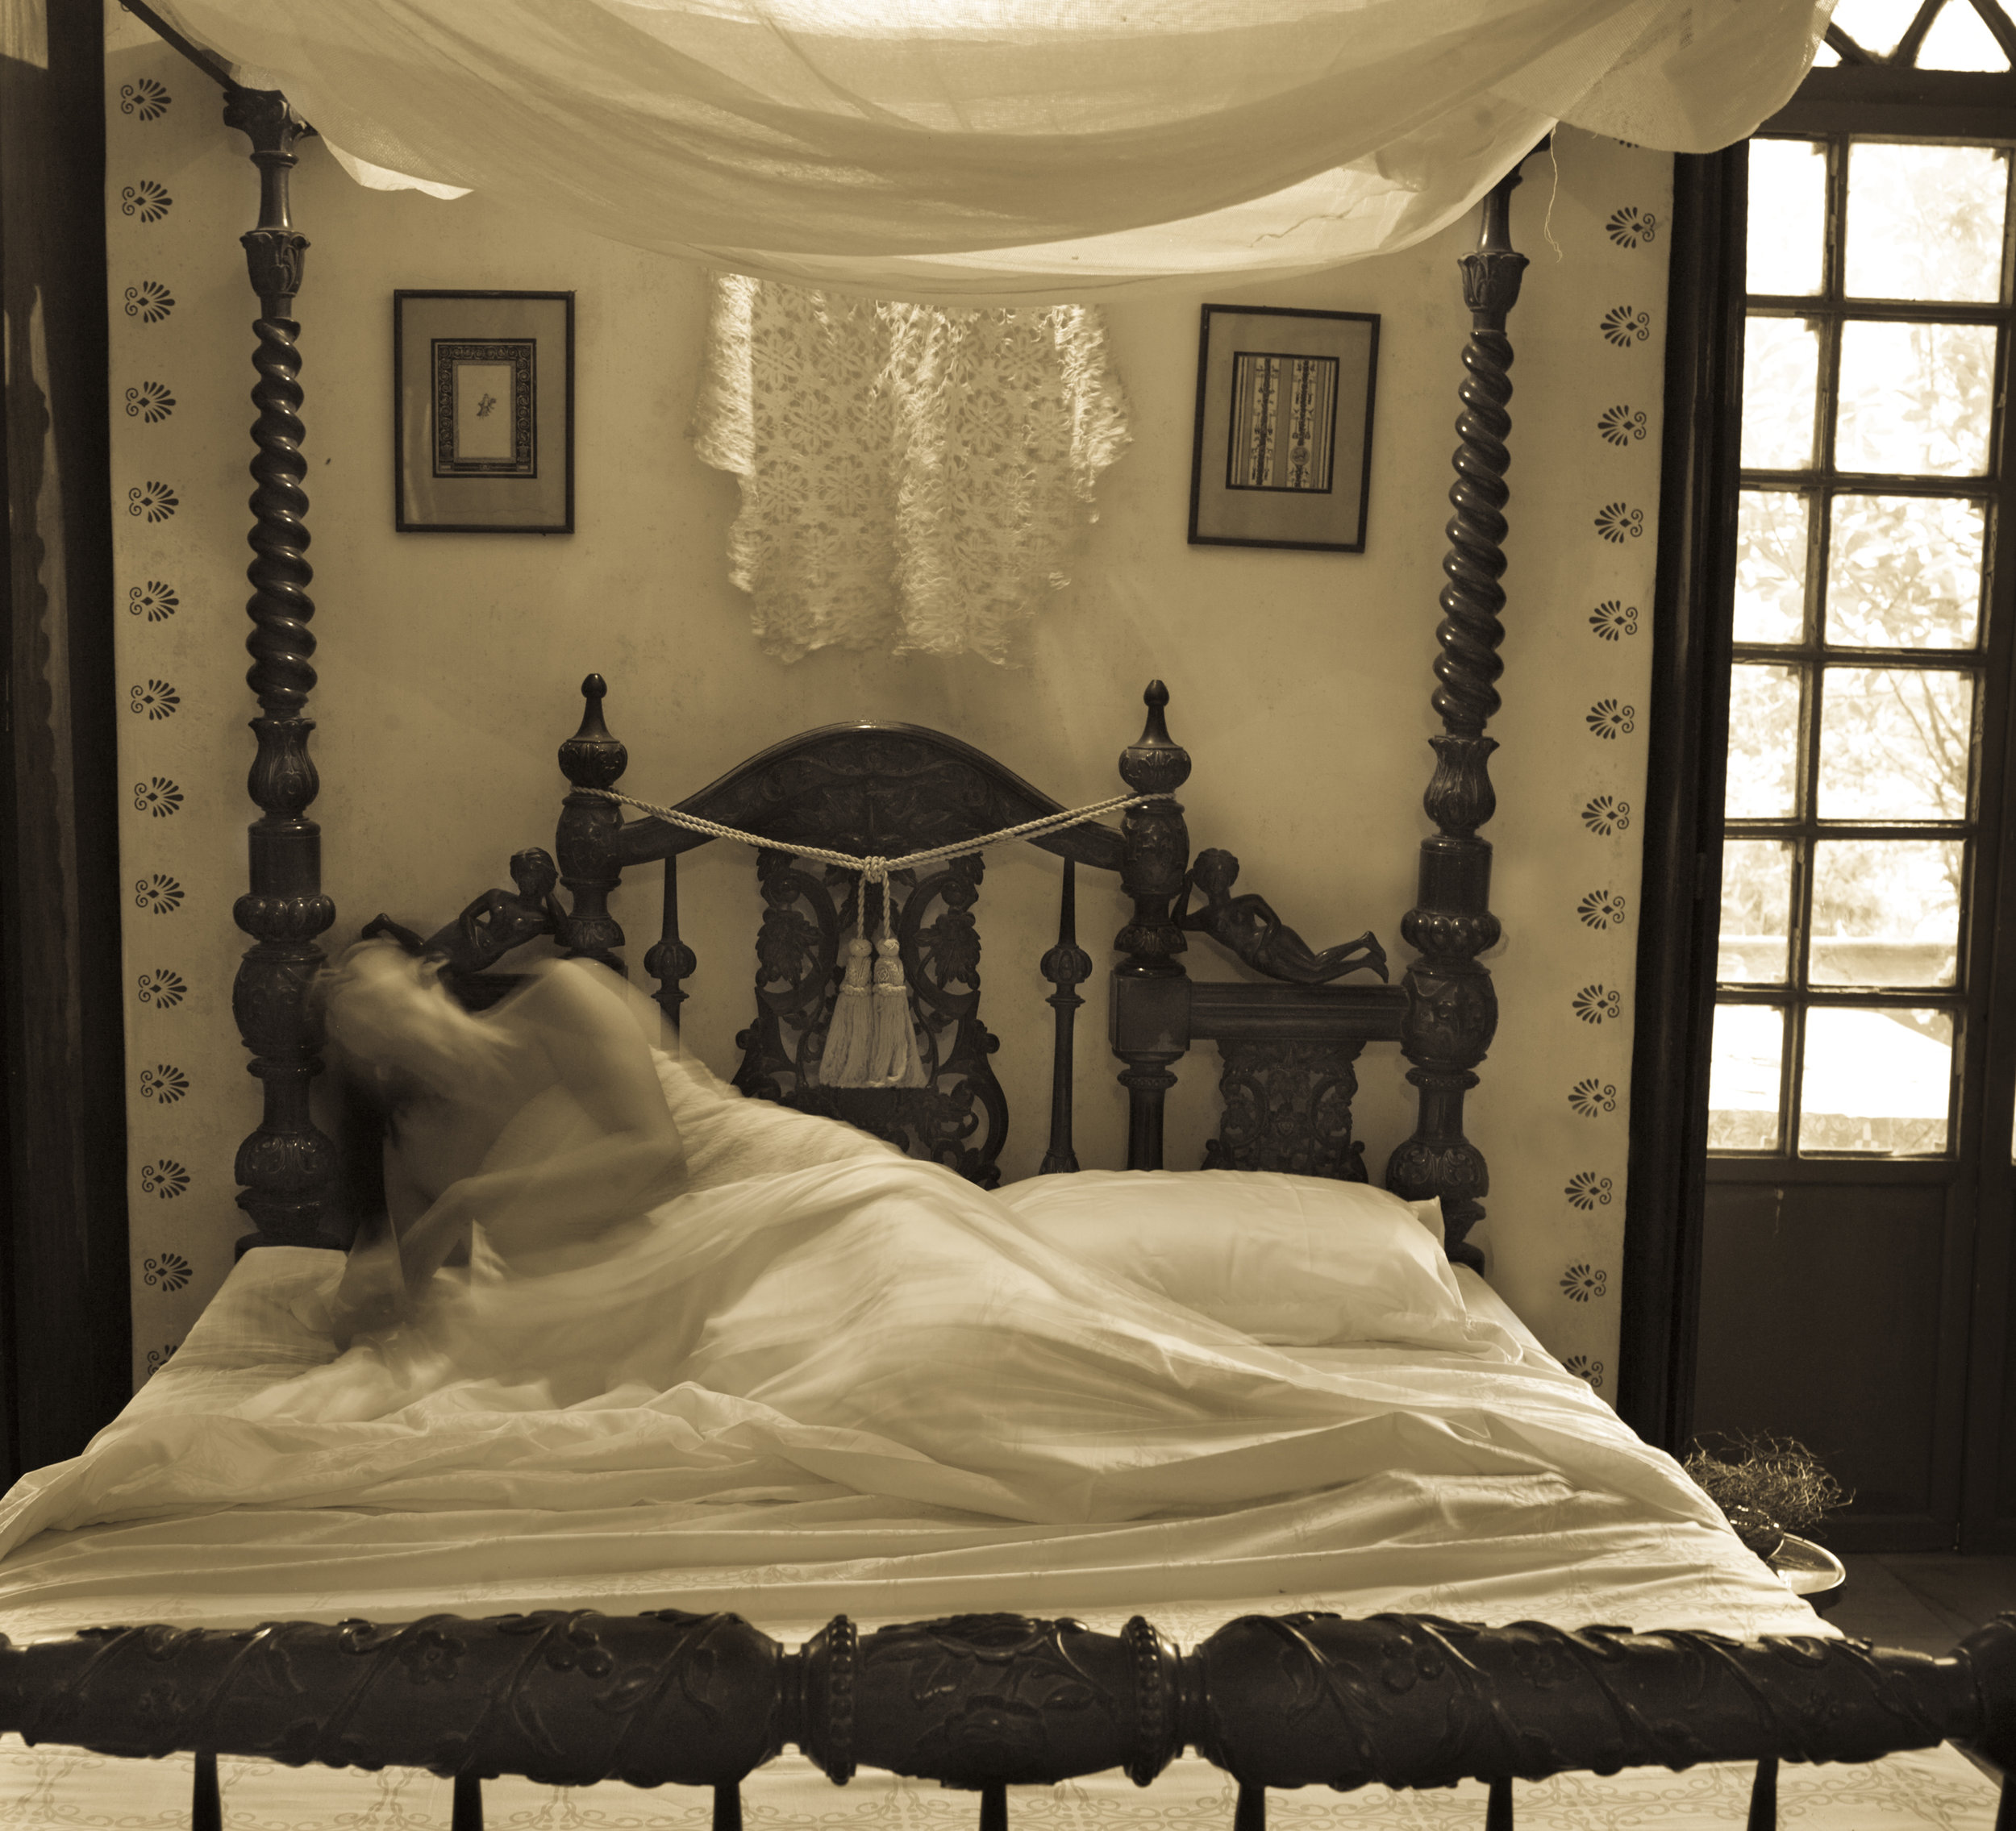 Pamela Sigh, The Lace Bed , 2012